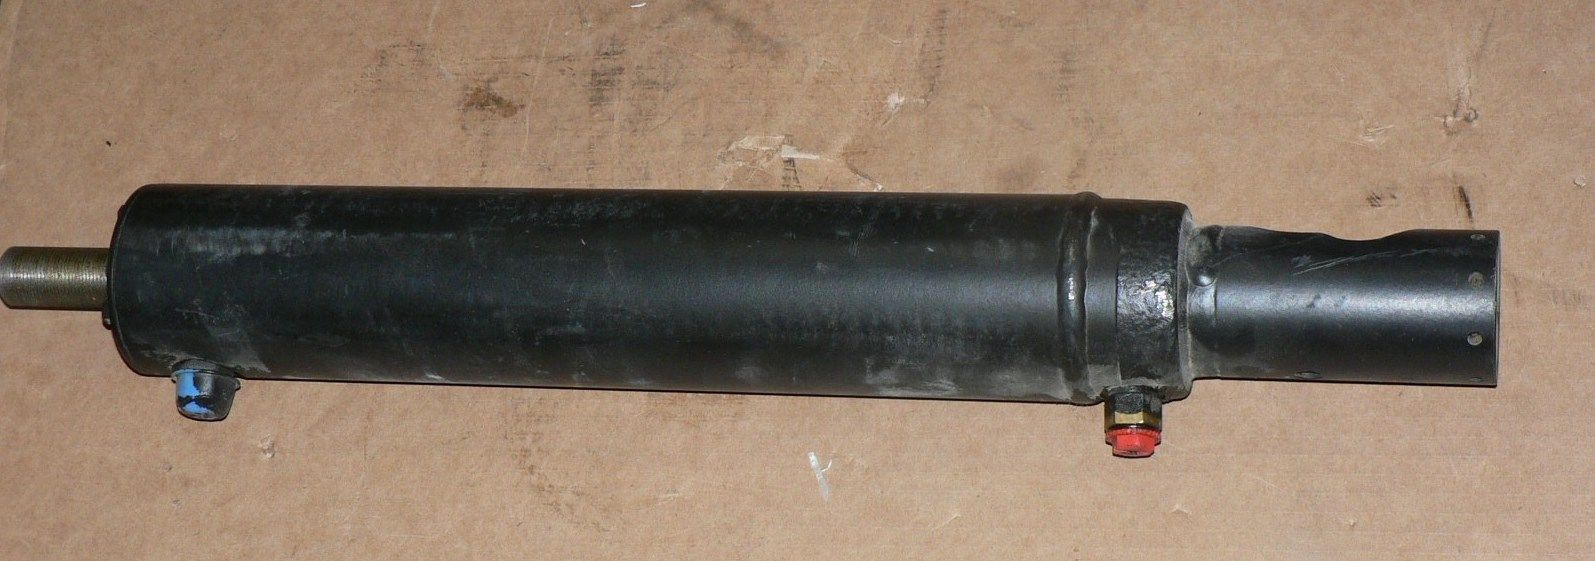 M939 M915 STEERING CYLINDER  TRW C44538-A1-1200